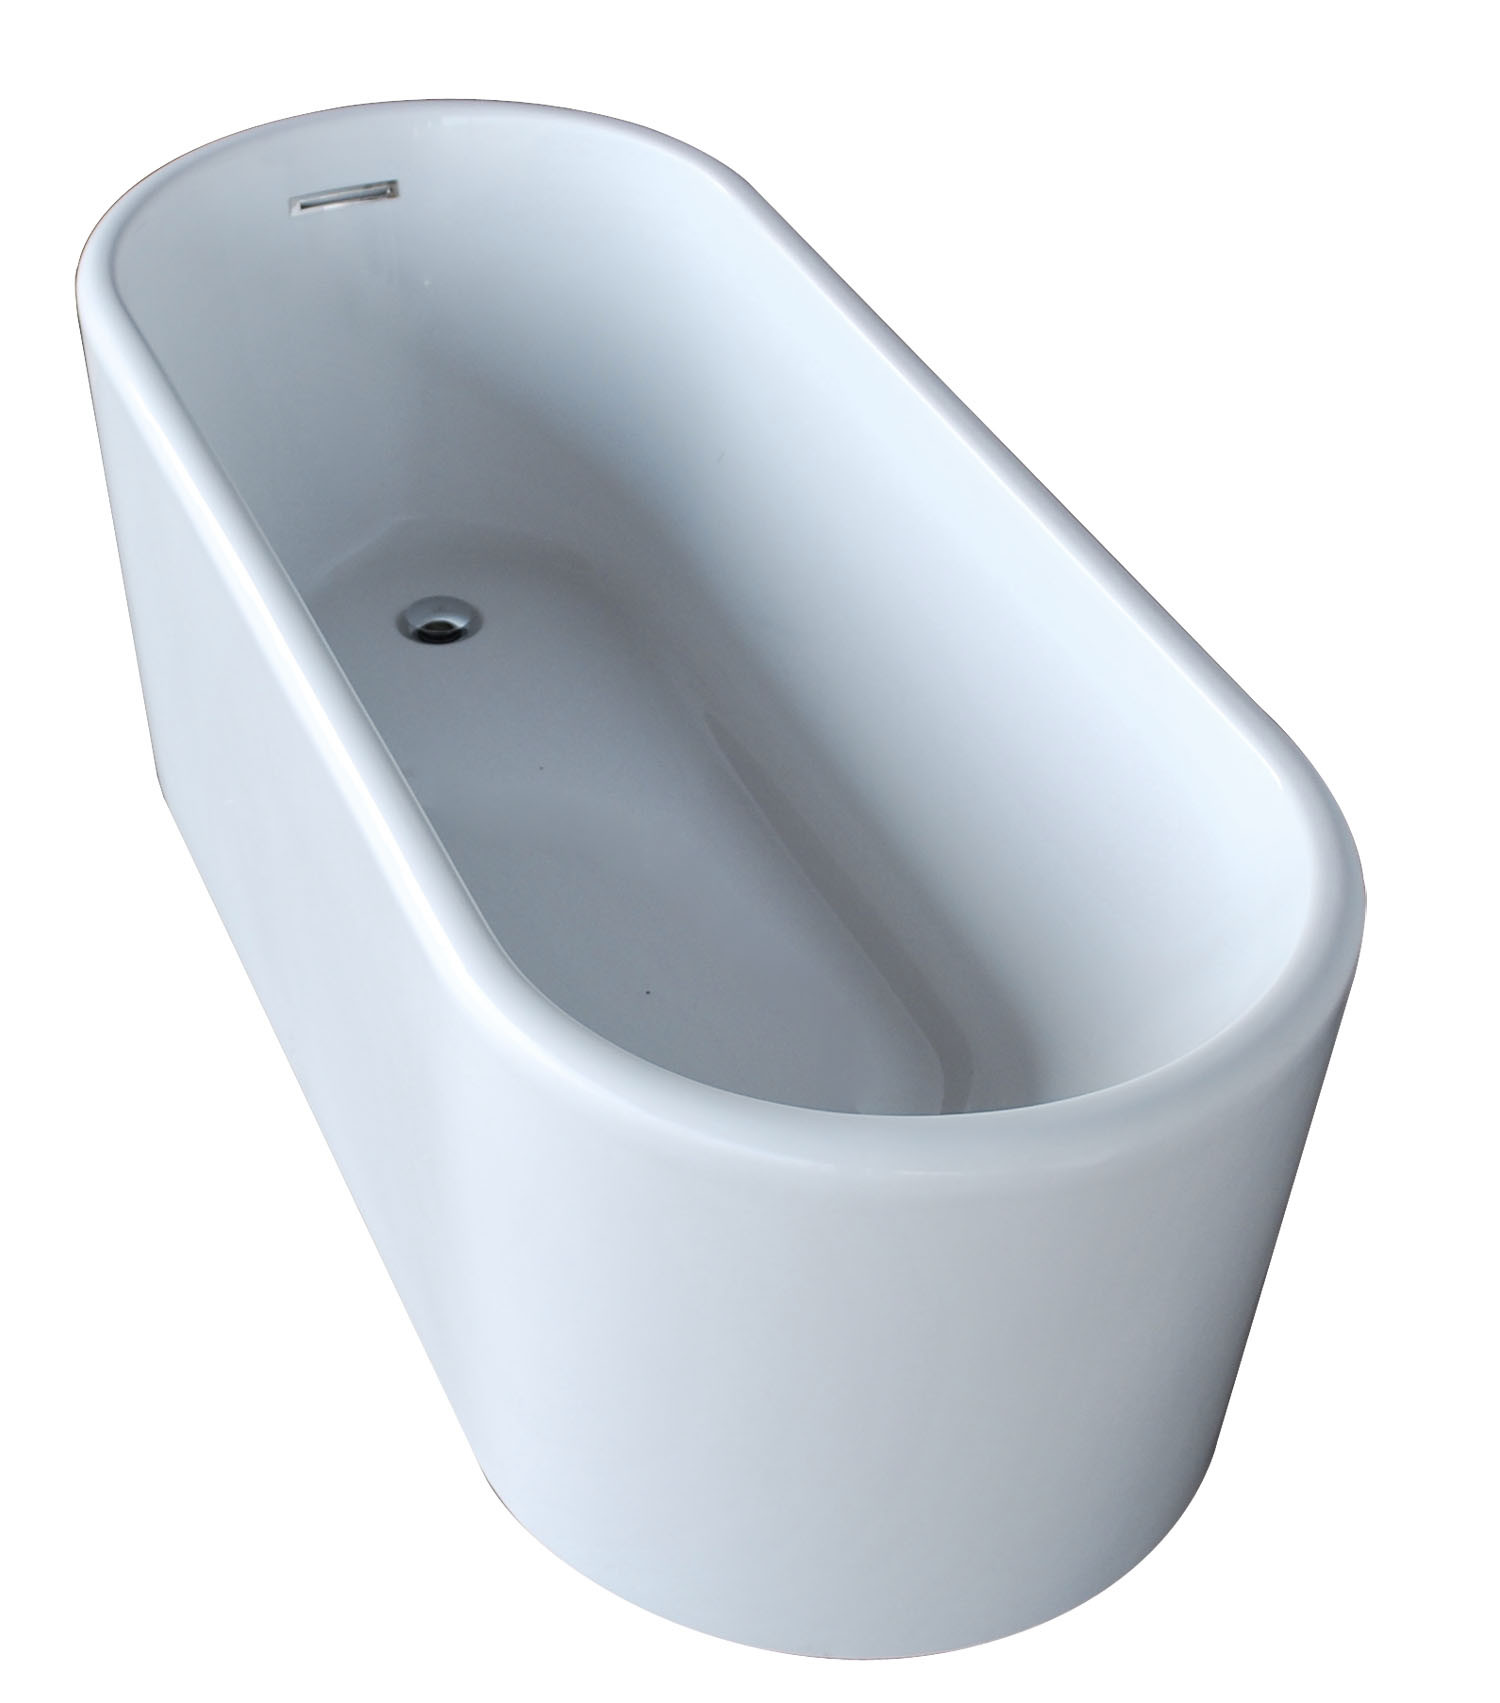 Anzzi FT-AZ008 Century Reversible Drain Freestanding Bathtub Glossy White